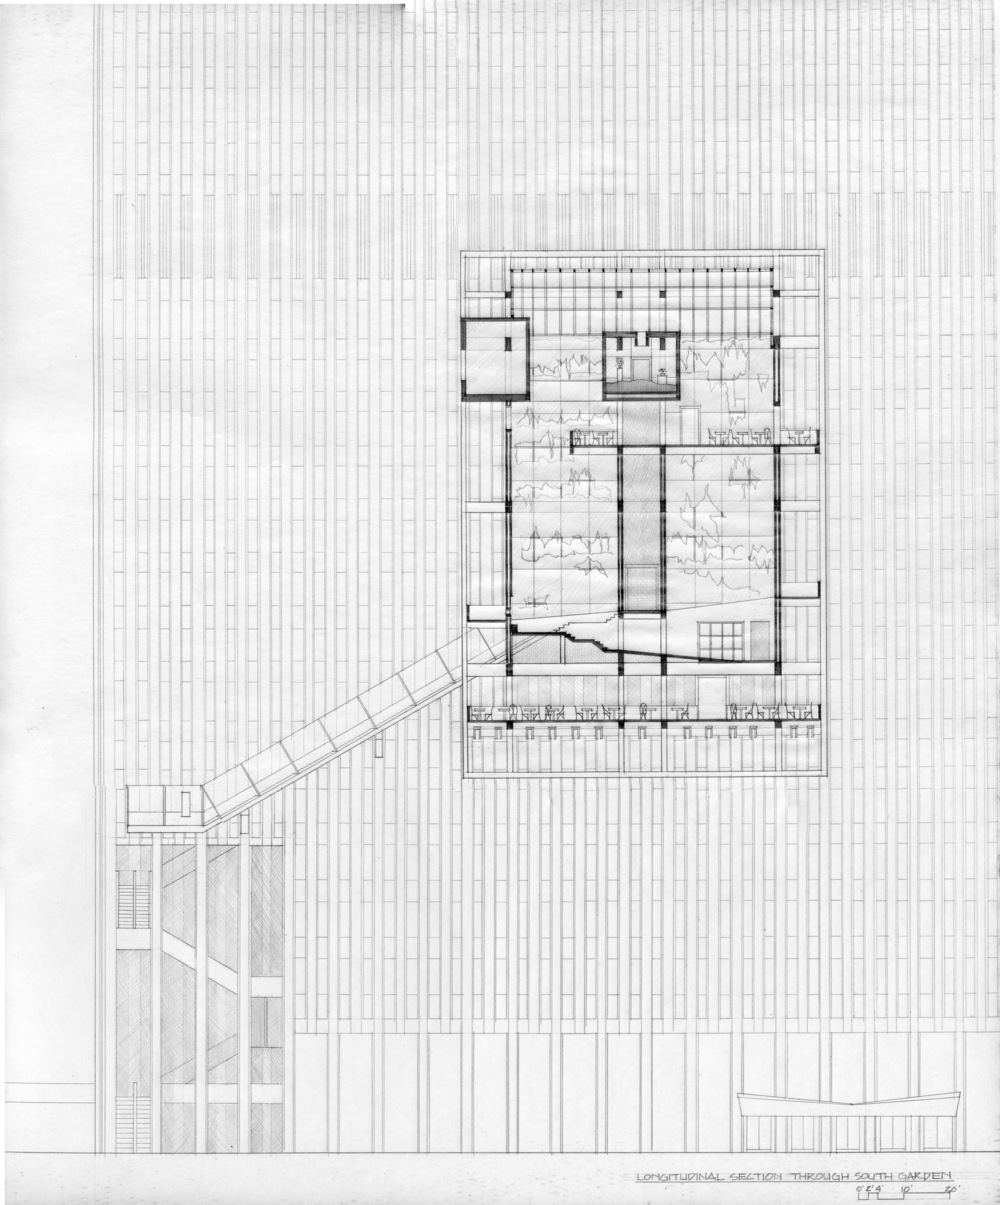 South Section / Elevation